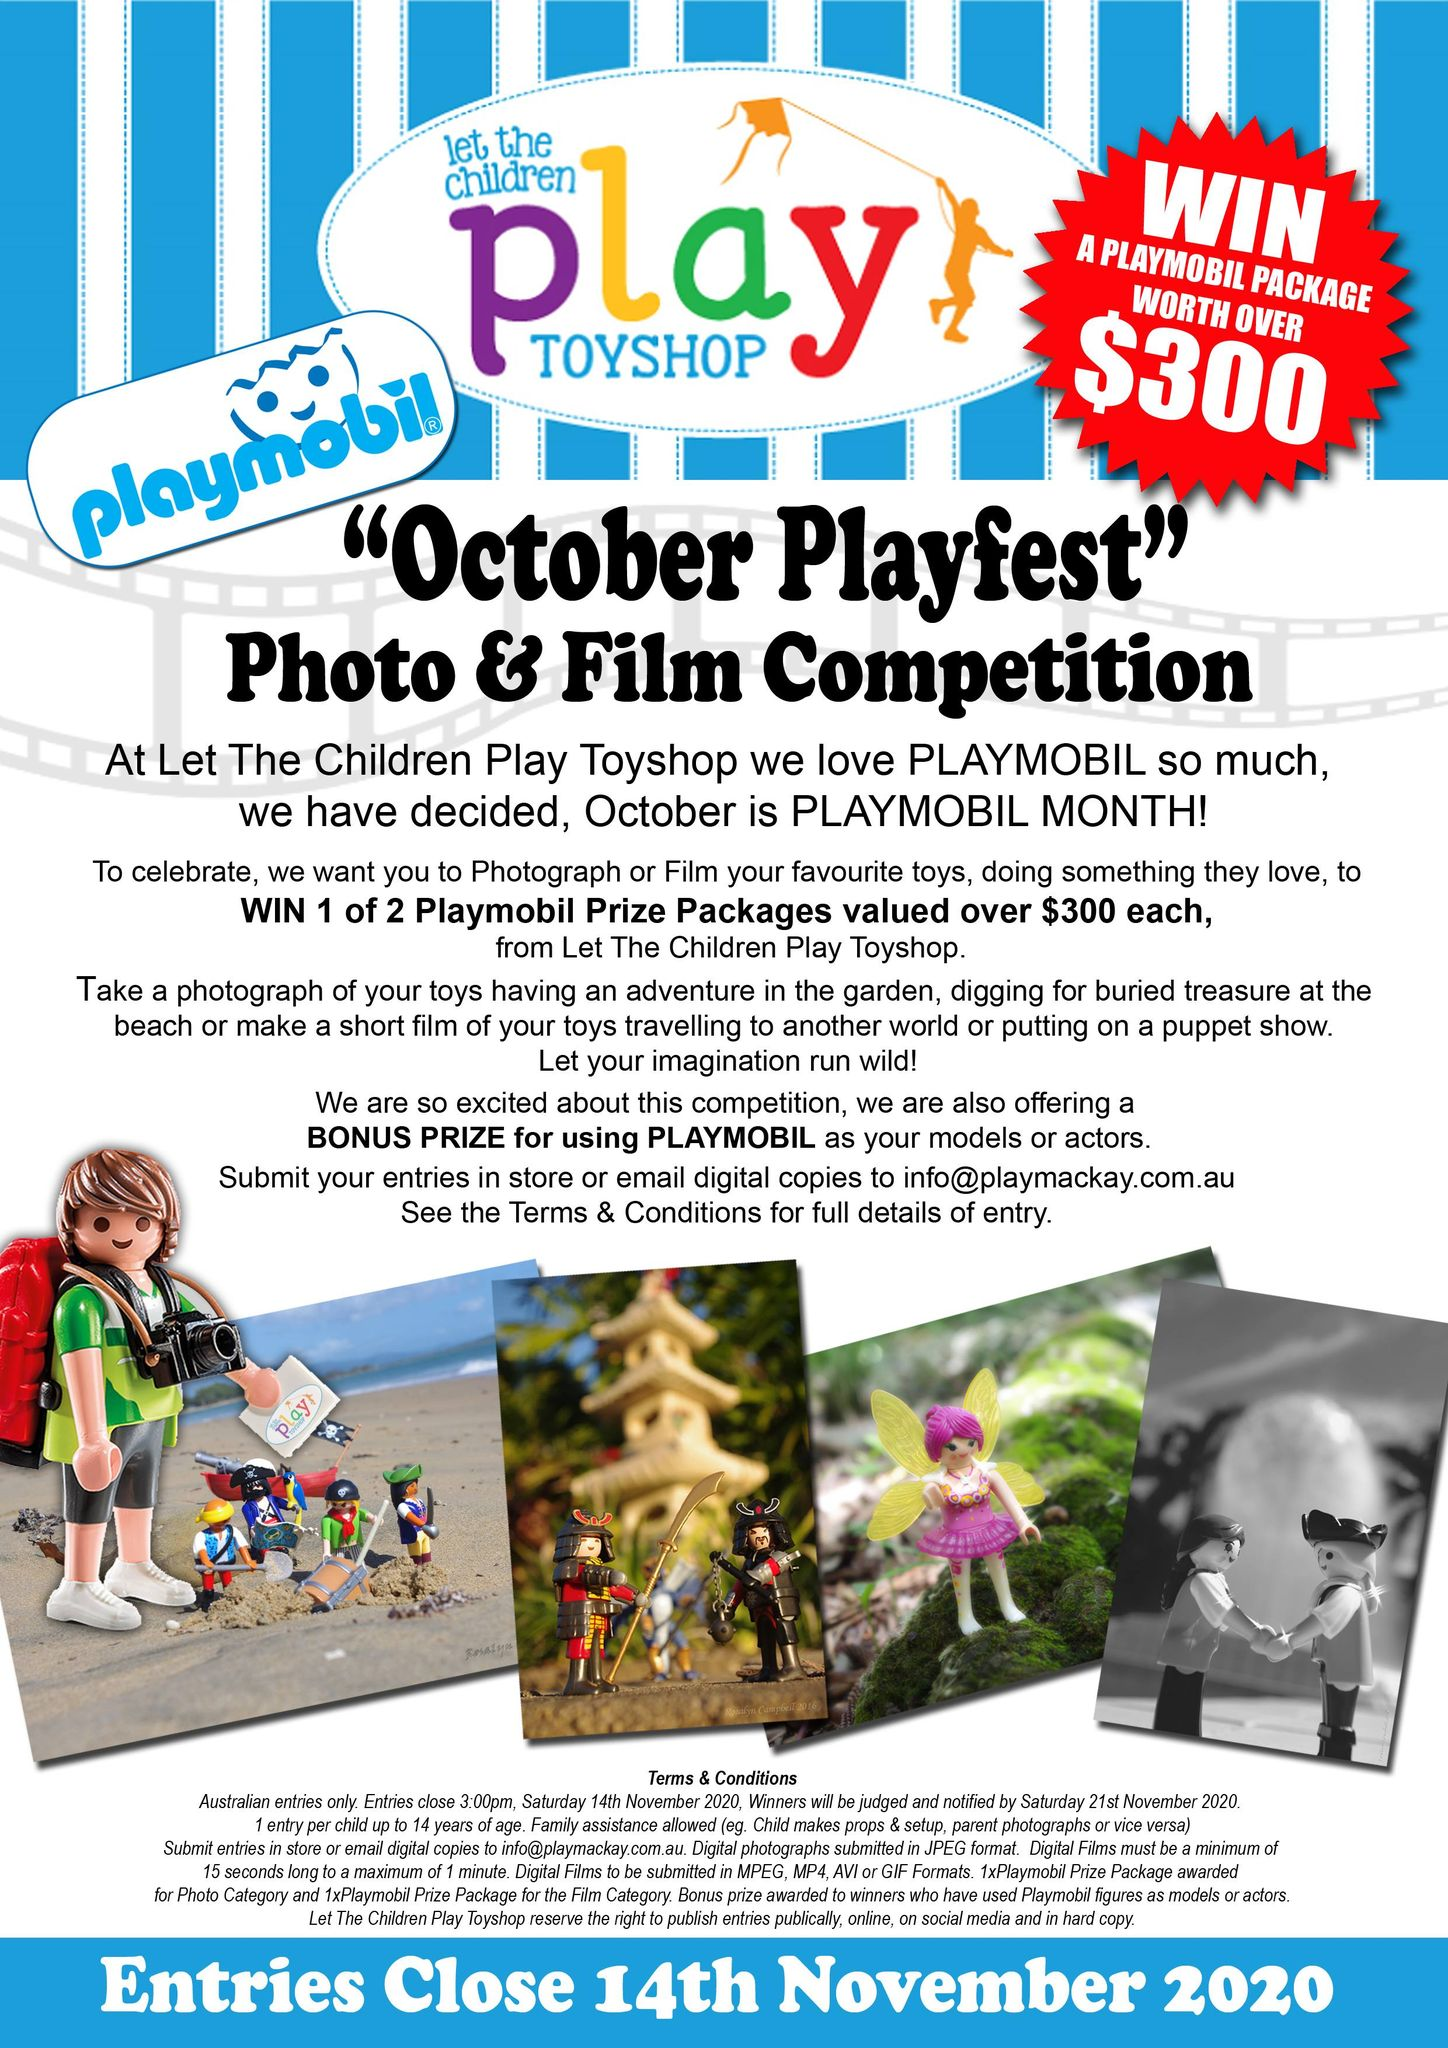 October Playfest Photo & Film Competition